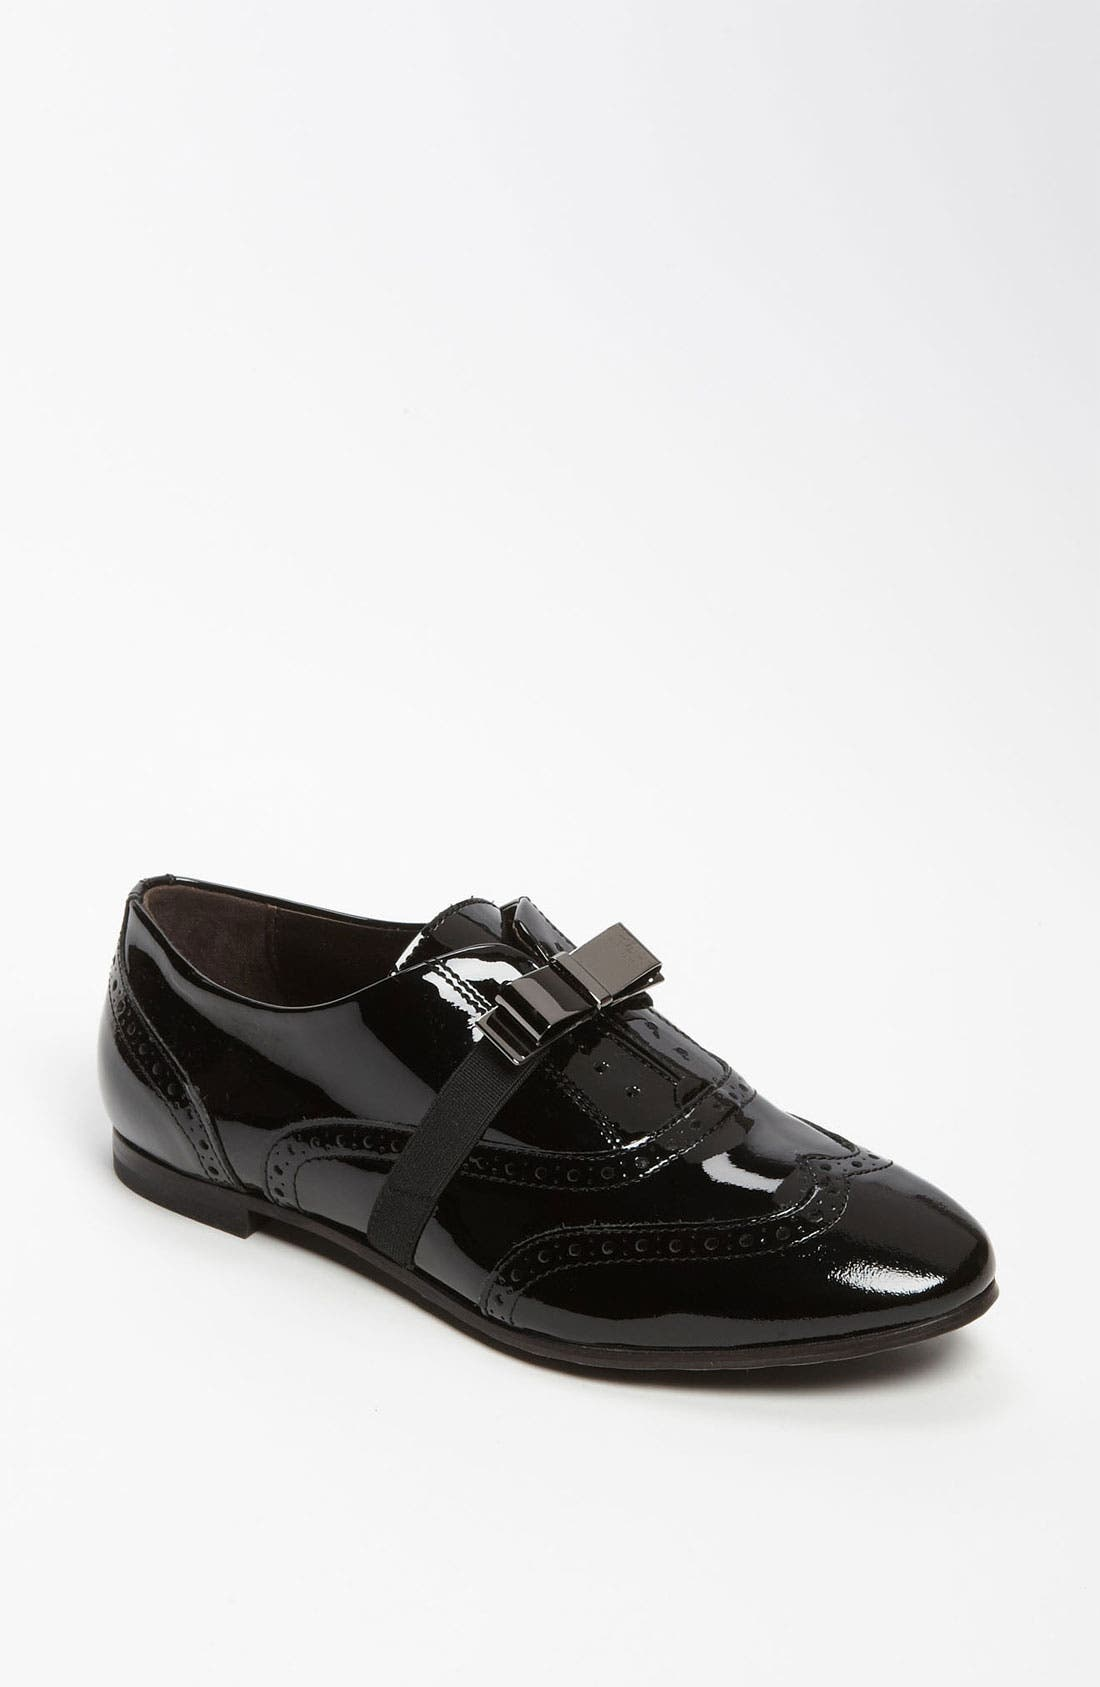 Alternate Image 1 Selected - Attilio Giusti Leombruni Oxford Slip-On